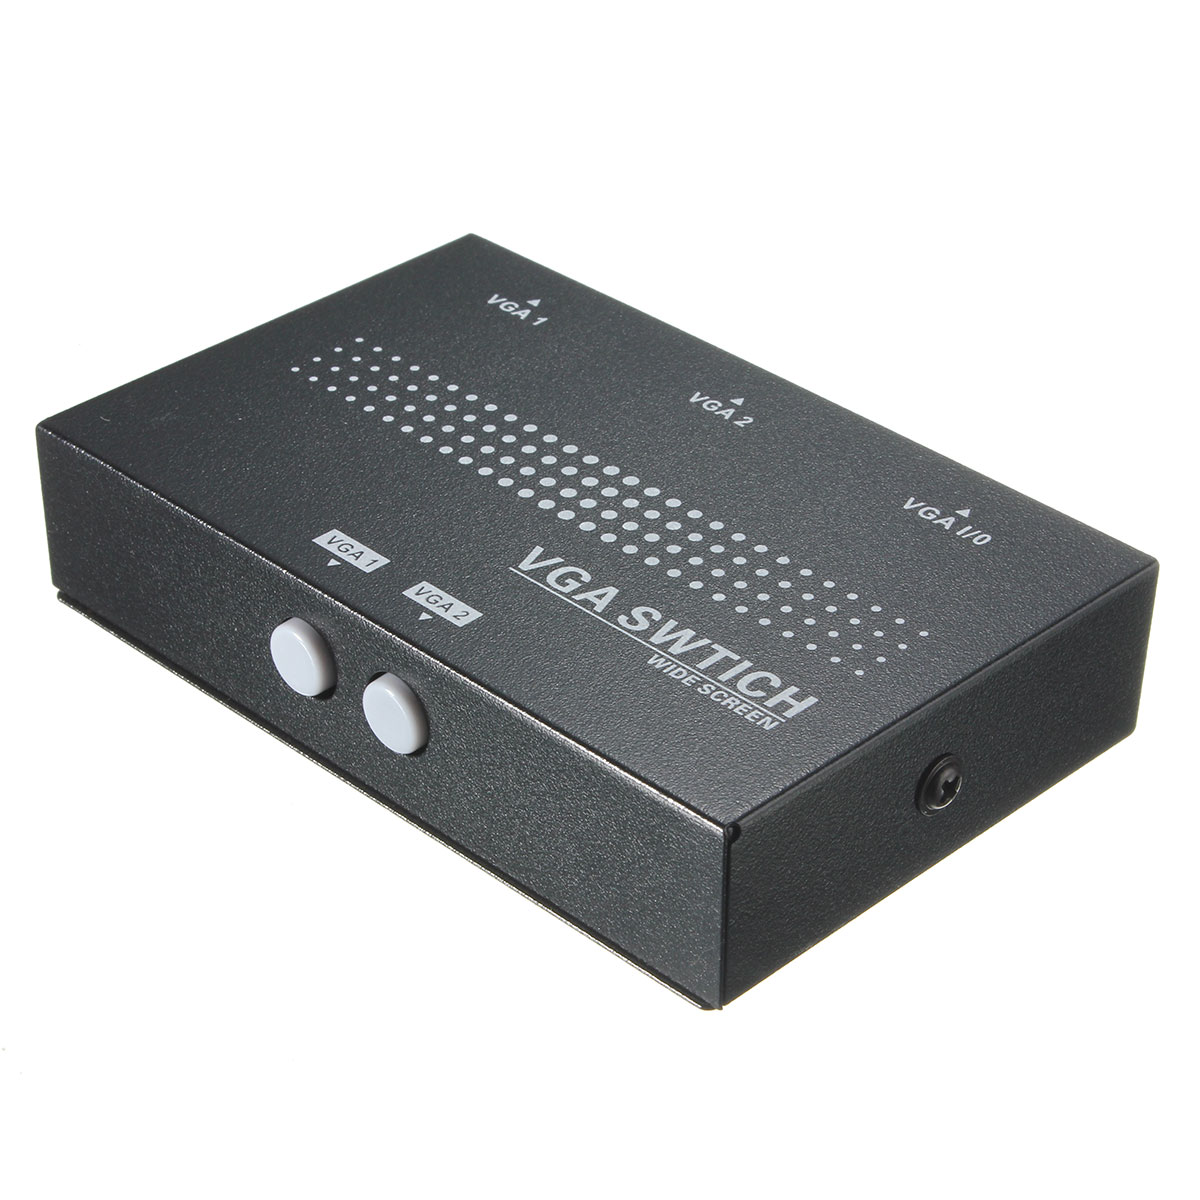 Original 2 Port Hub USB 2.0 KVM SVGA VGA Switch Box Monitor Adapter Connects Printer Intelli Keyboard Mouse Sharing HC